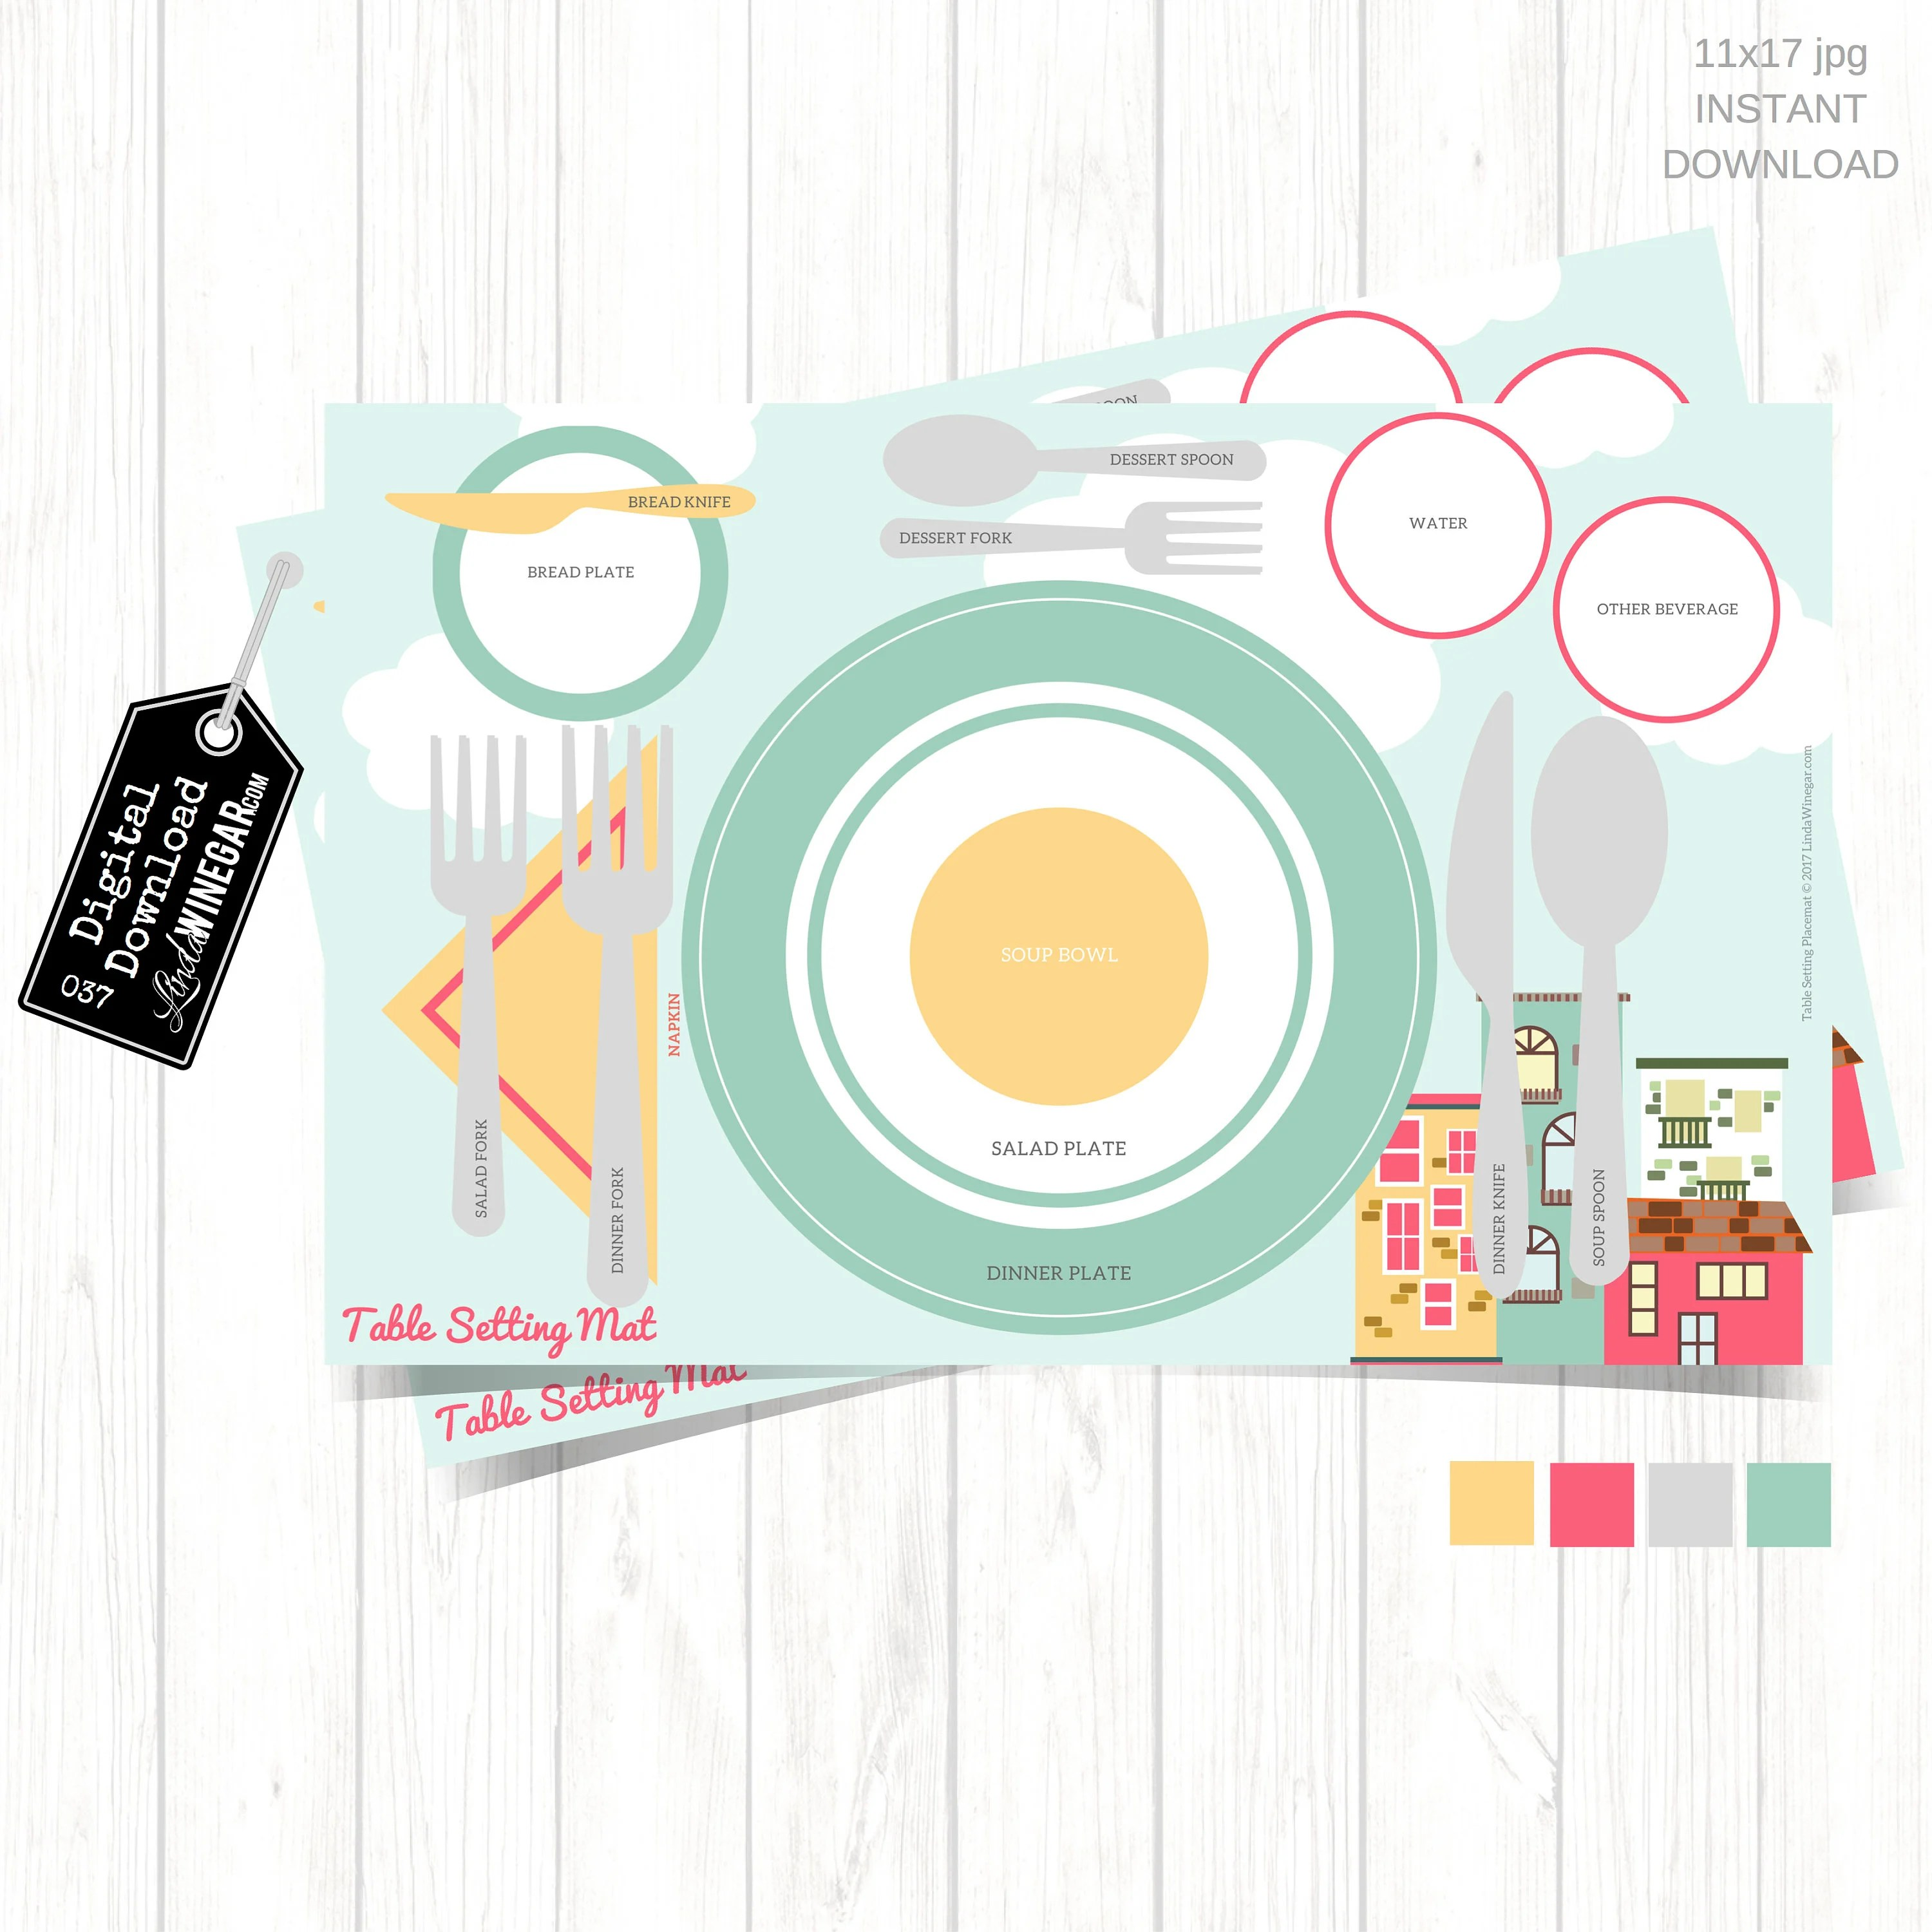 Etiquette Placemat For Teens Table Setting Diagram For